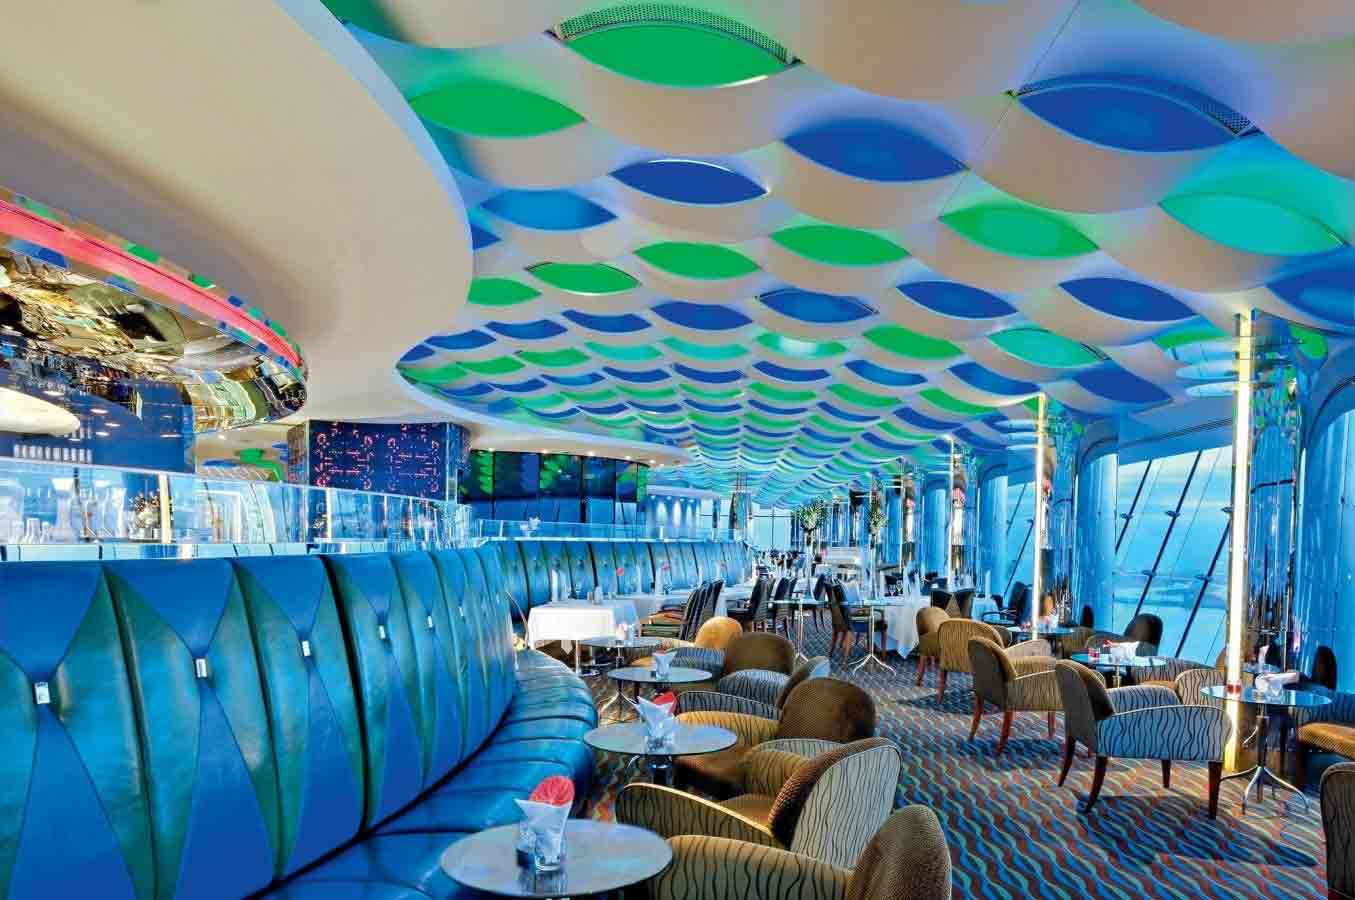 Skyview Bar in Burj Al Arab Dubai